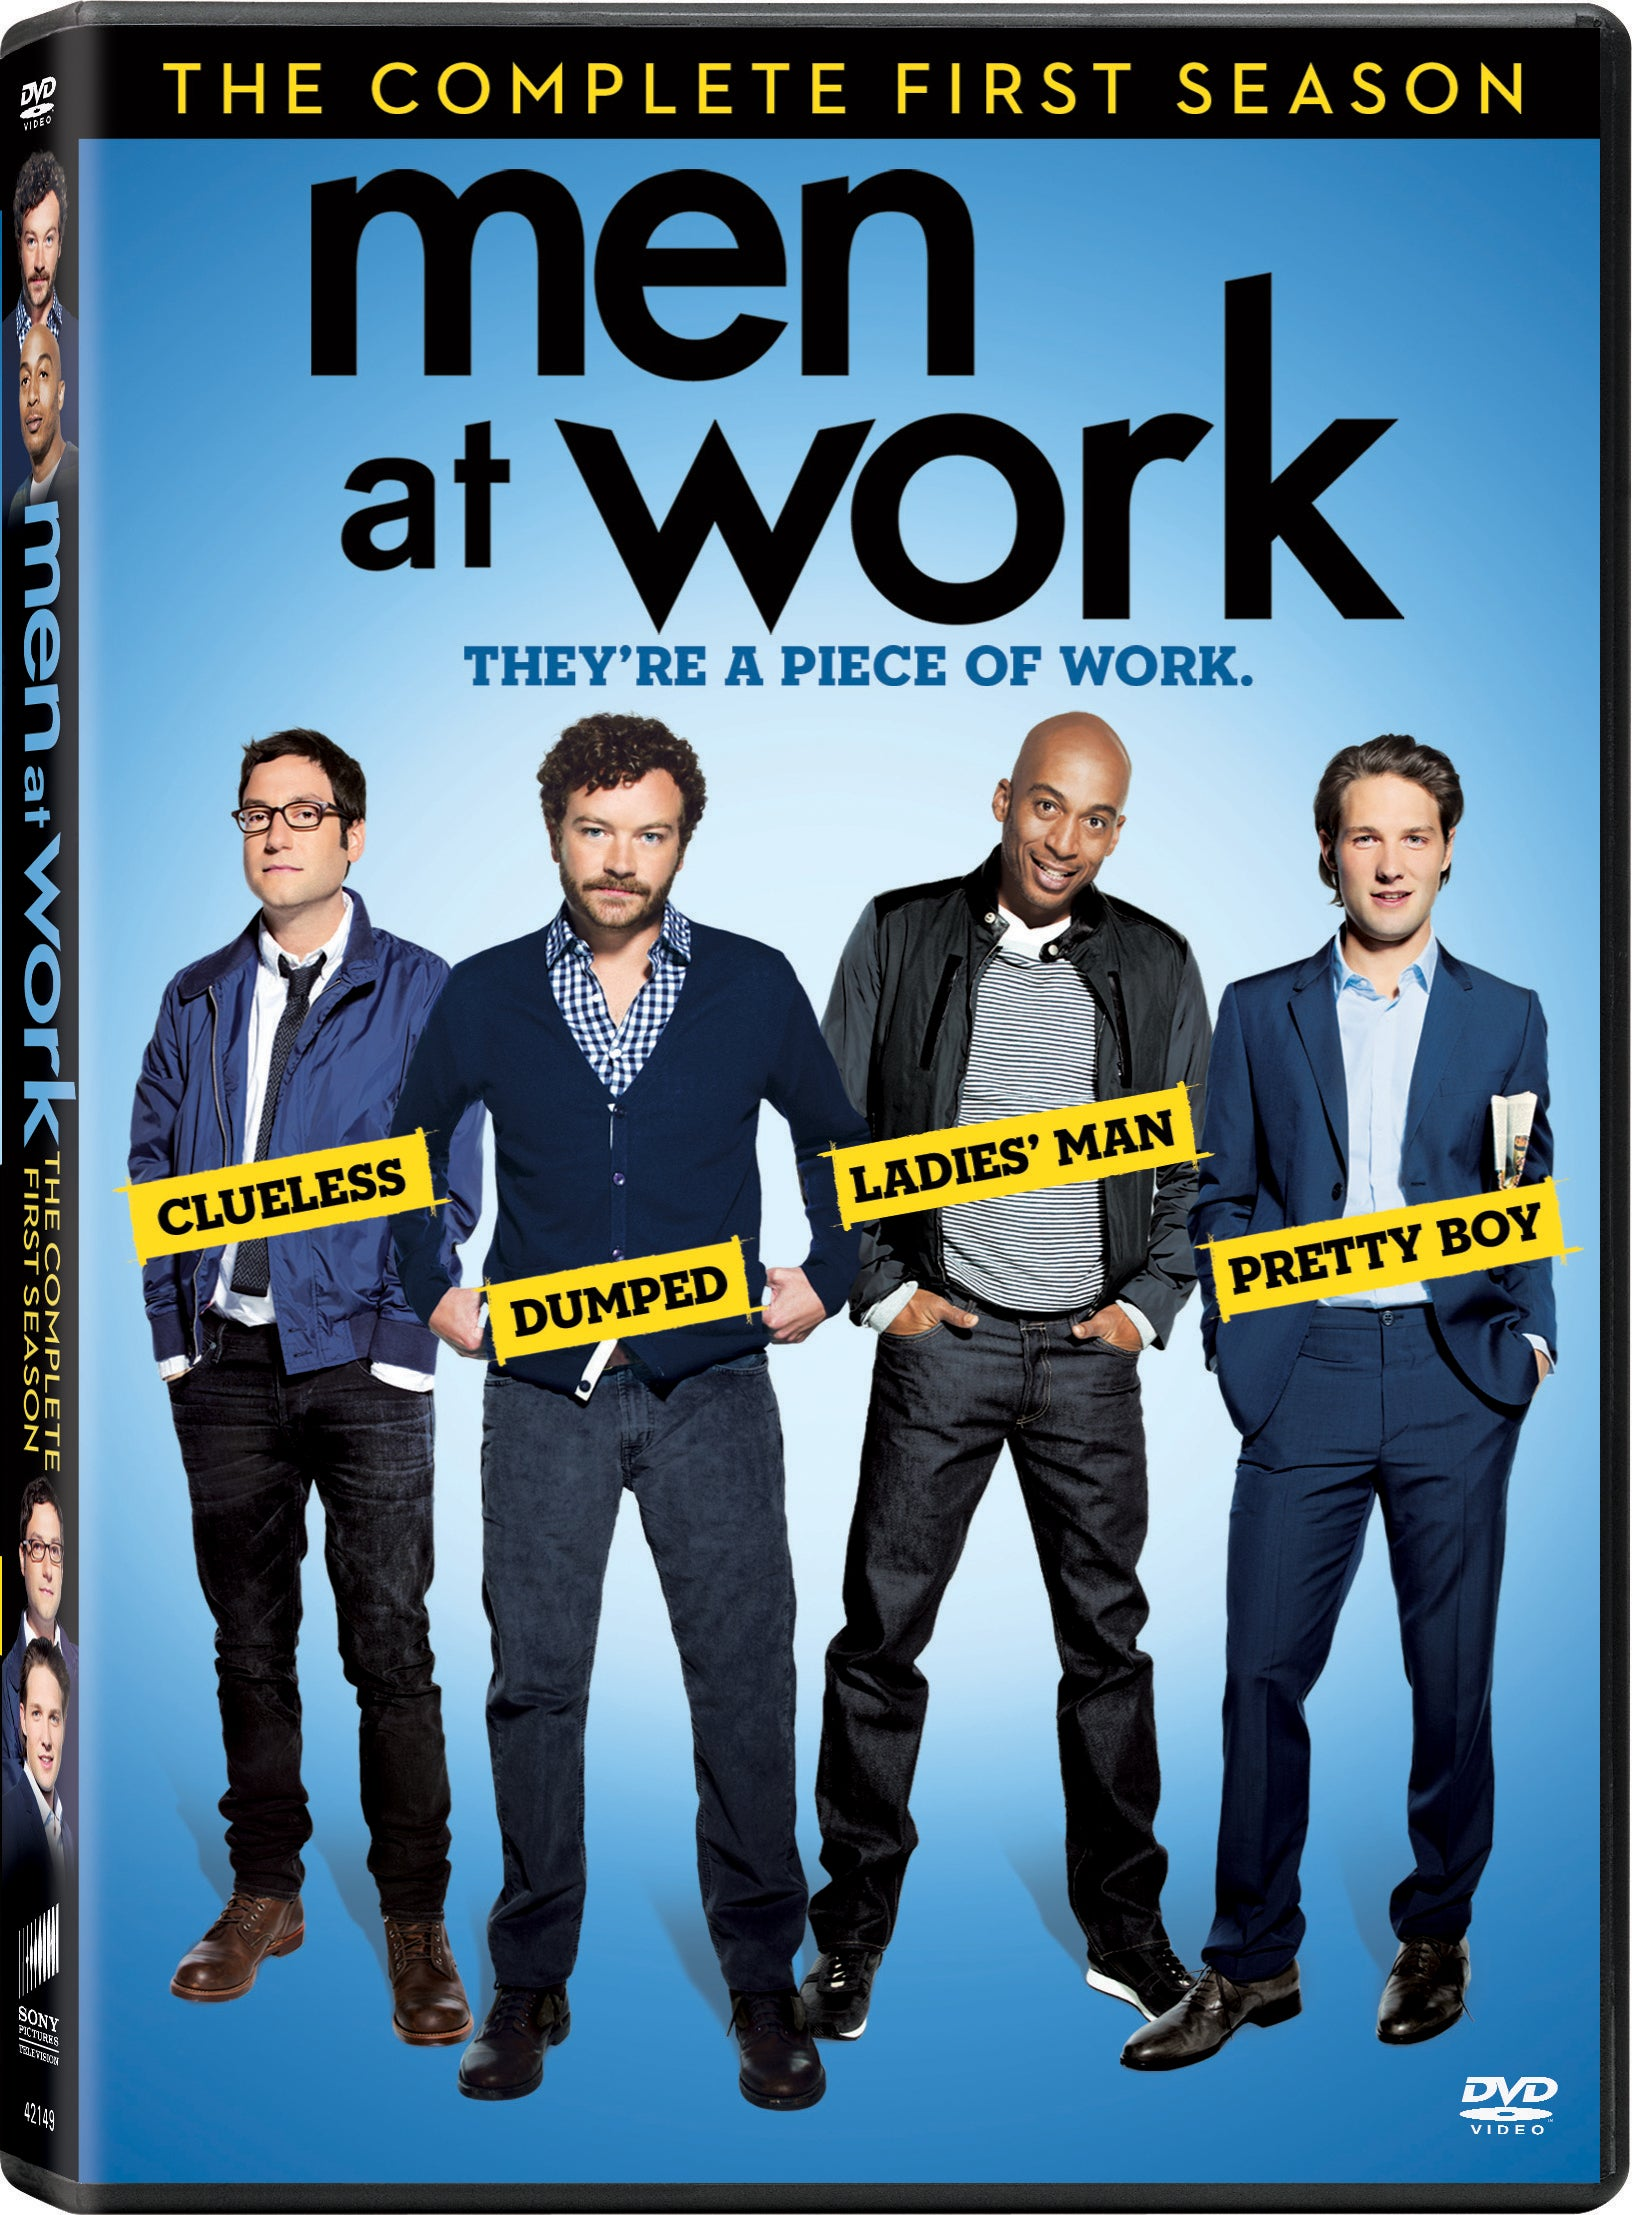 Men at Work: The Complete First Season (DVD)